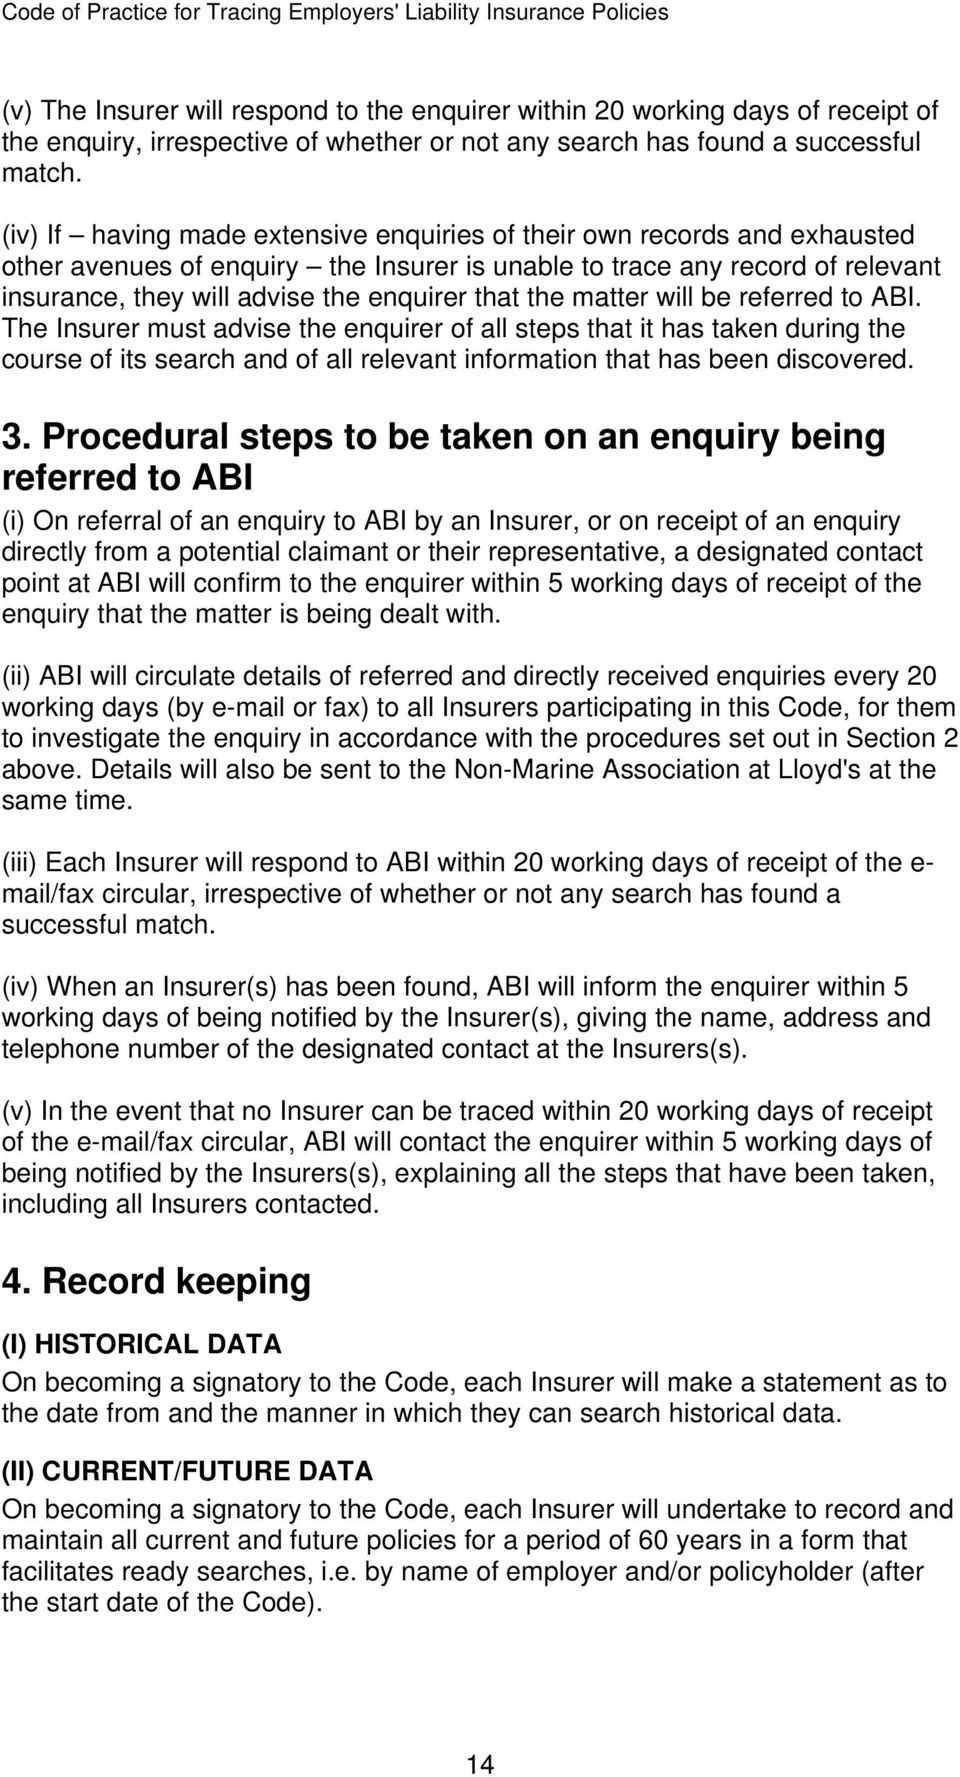 the matter will be referred to ABI. The Insurer must advise the enquirer of all steps that it has taken during the course of its search and of all relevant information that has been discovered. 3.